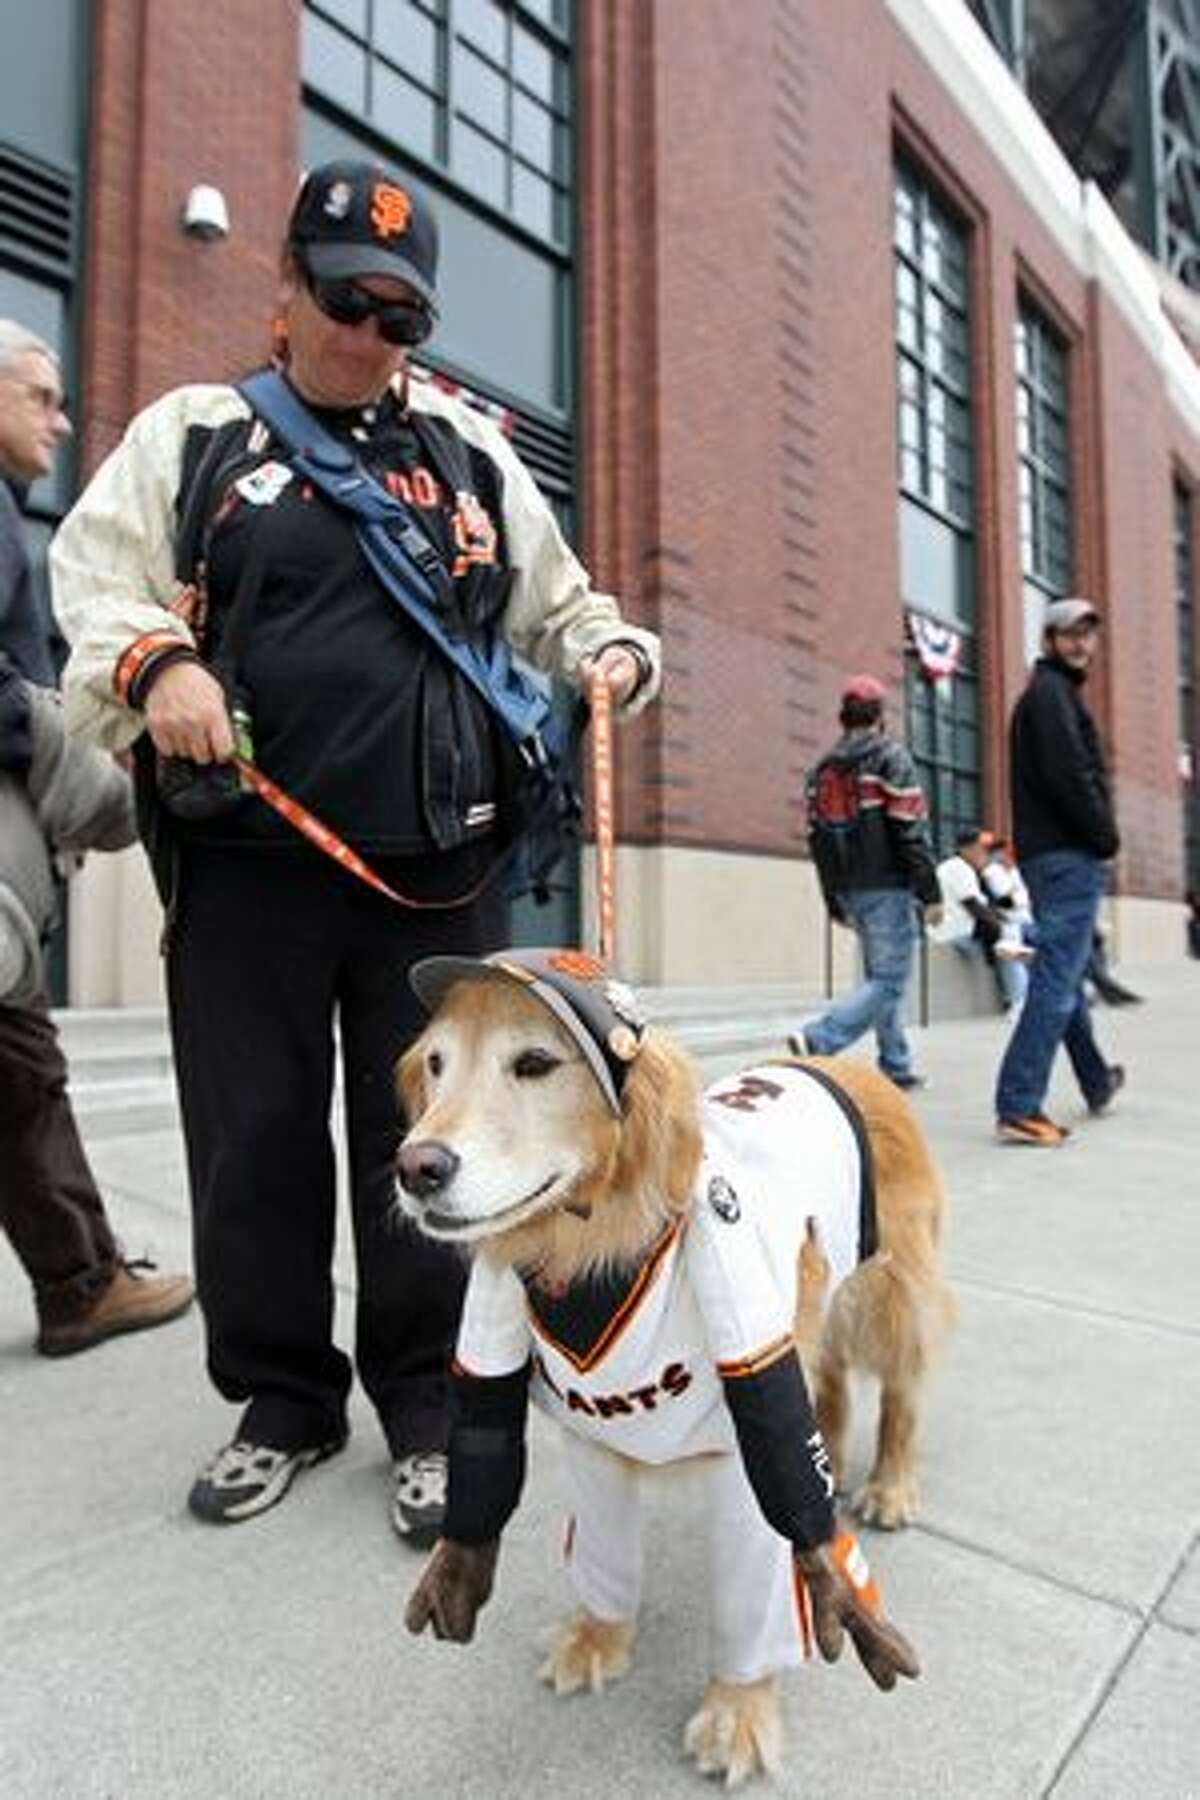 A fan of the San Francisco Giants and her dog pose outside of AT&T Park prior to Game One of the 2010 Major League Baseball World Series on October 27, 2010 in San Francisco, California.